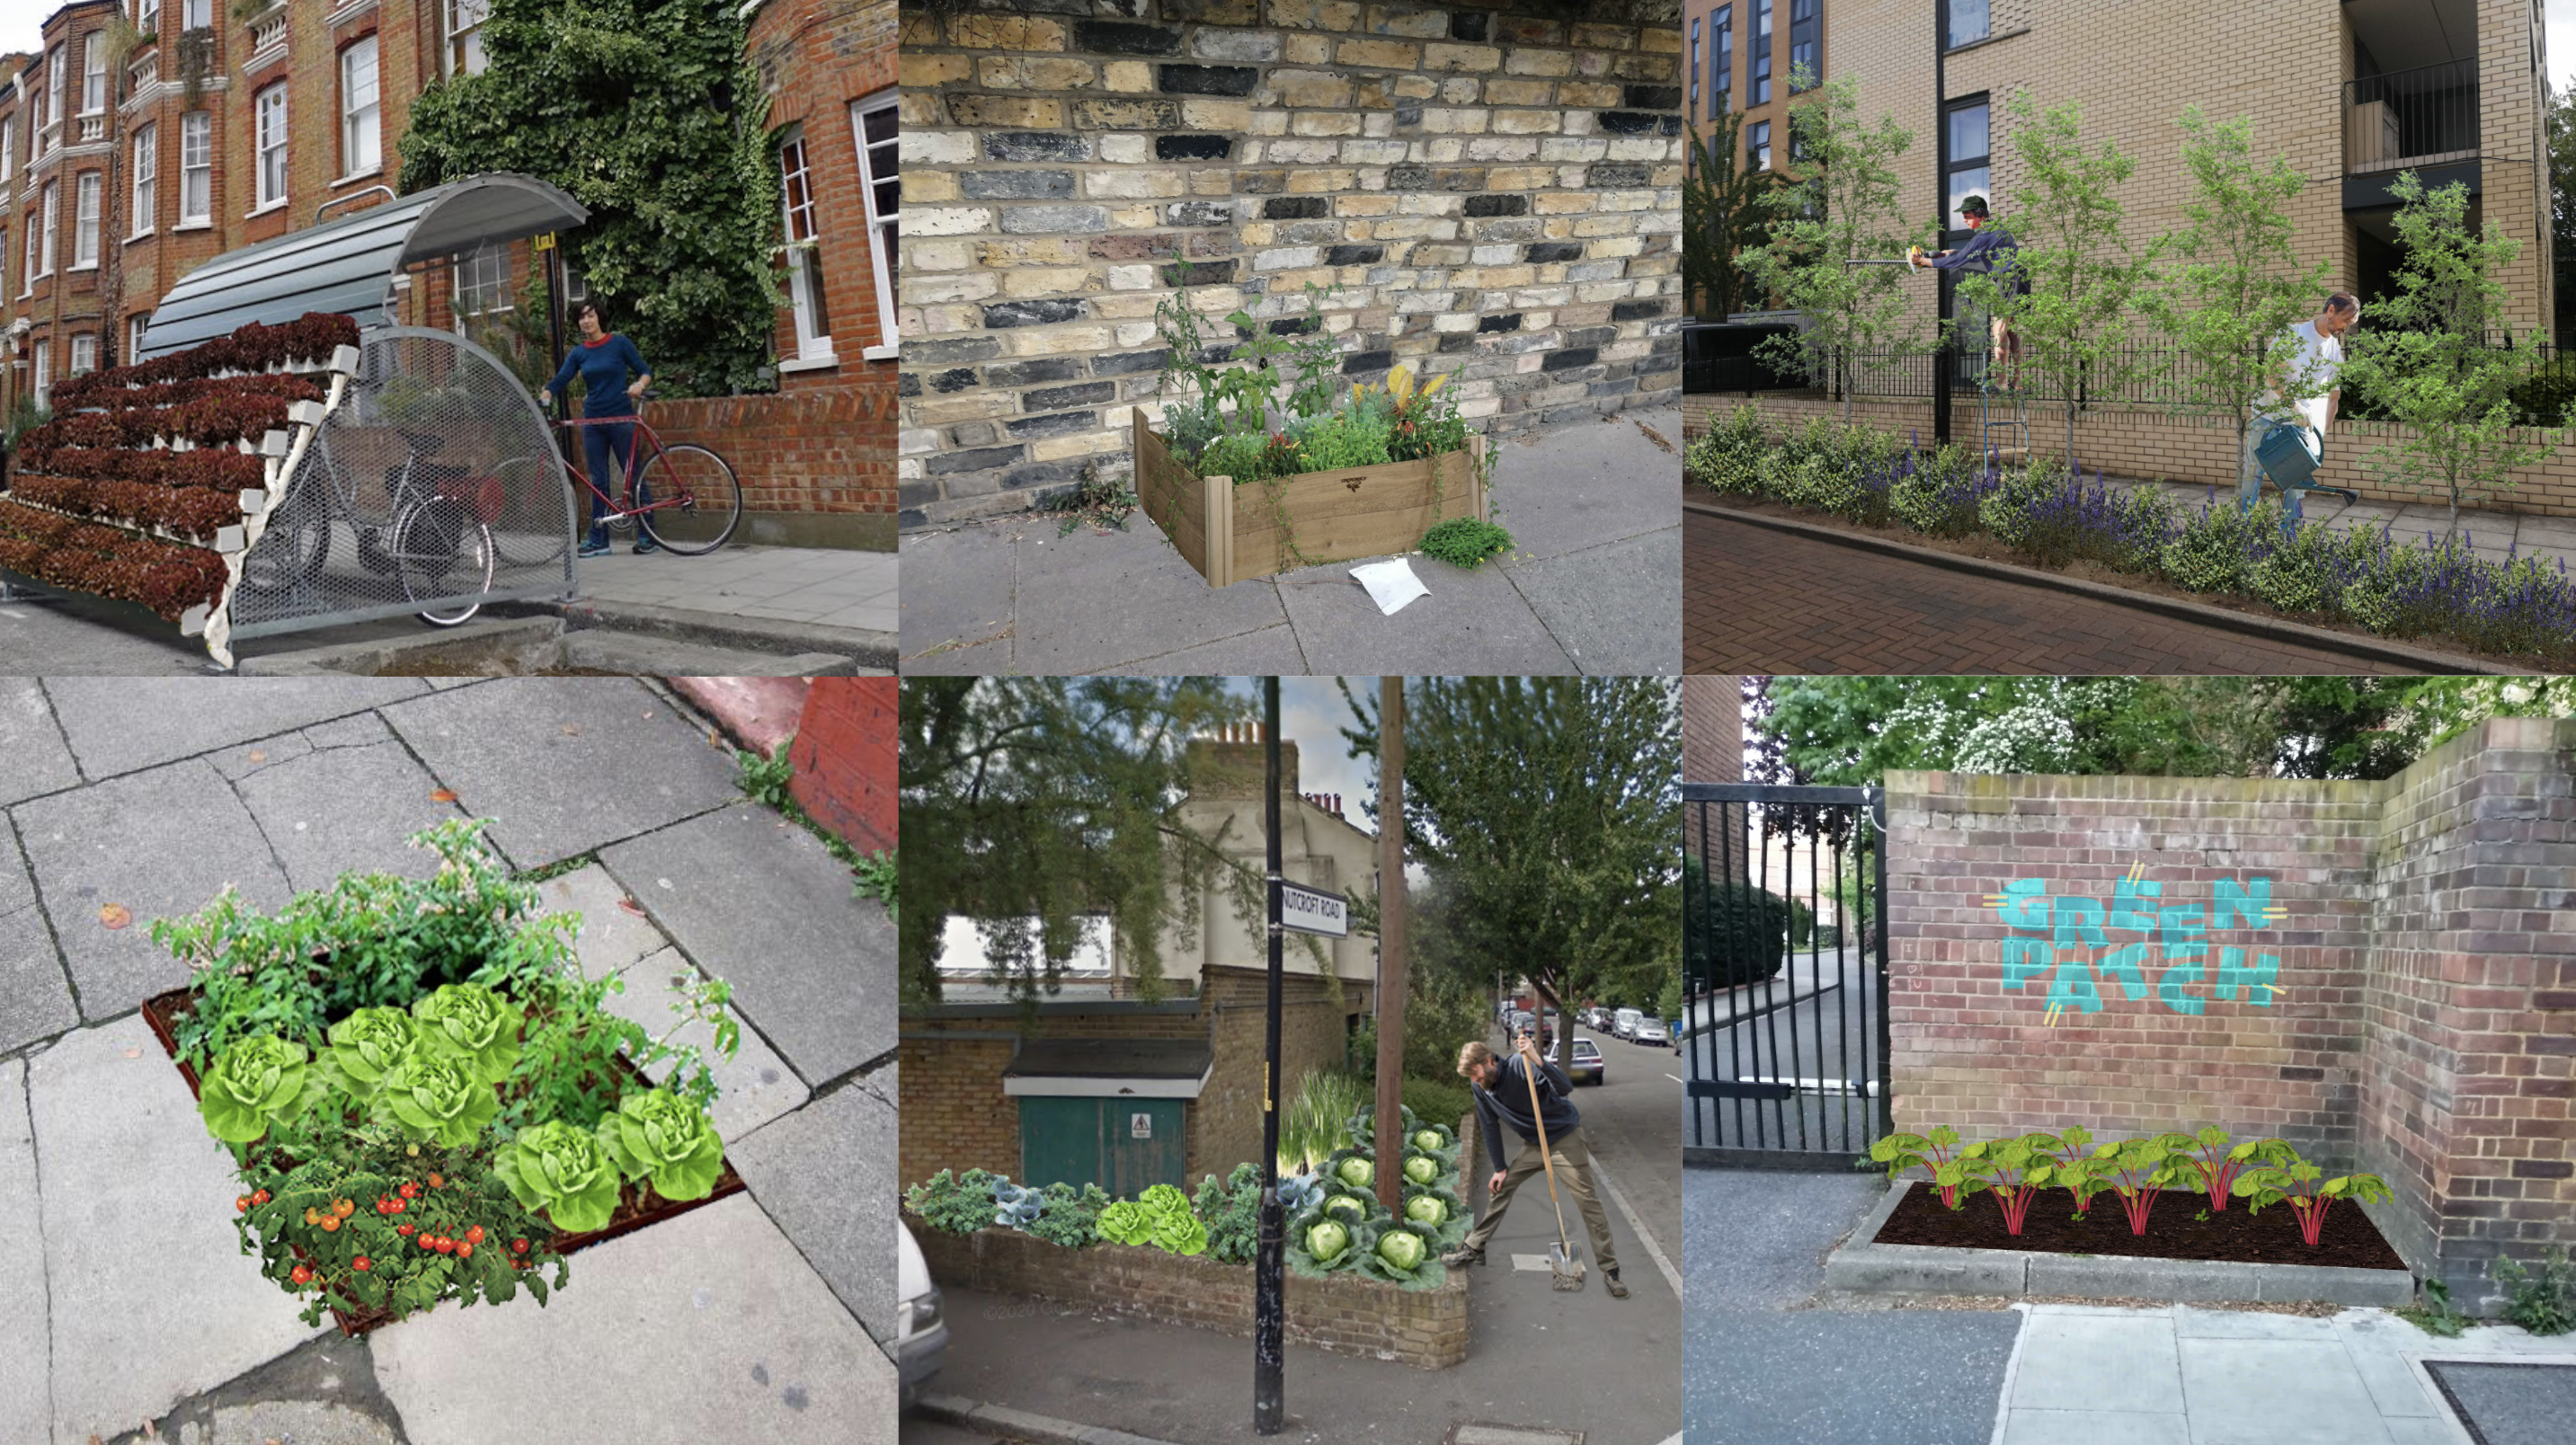 images of london planting areas with iullustrations of plants overlaid